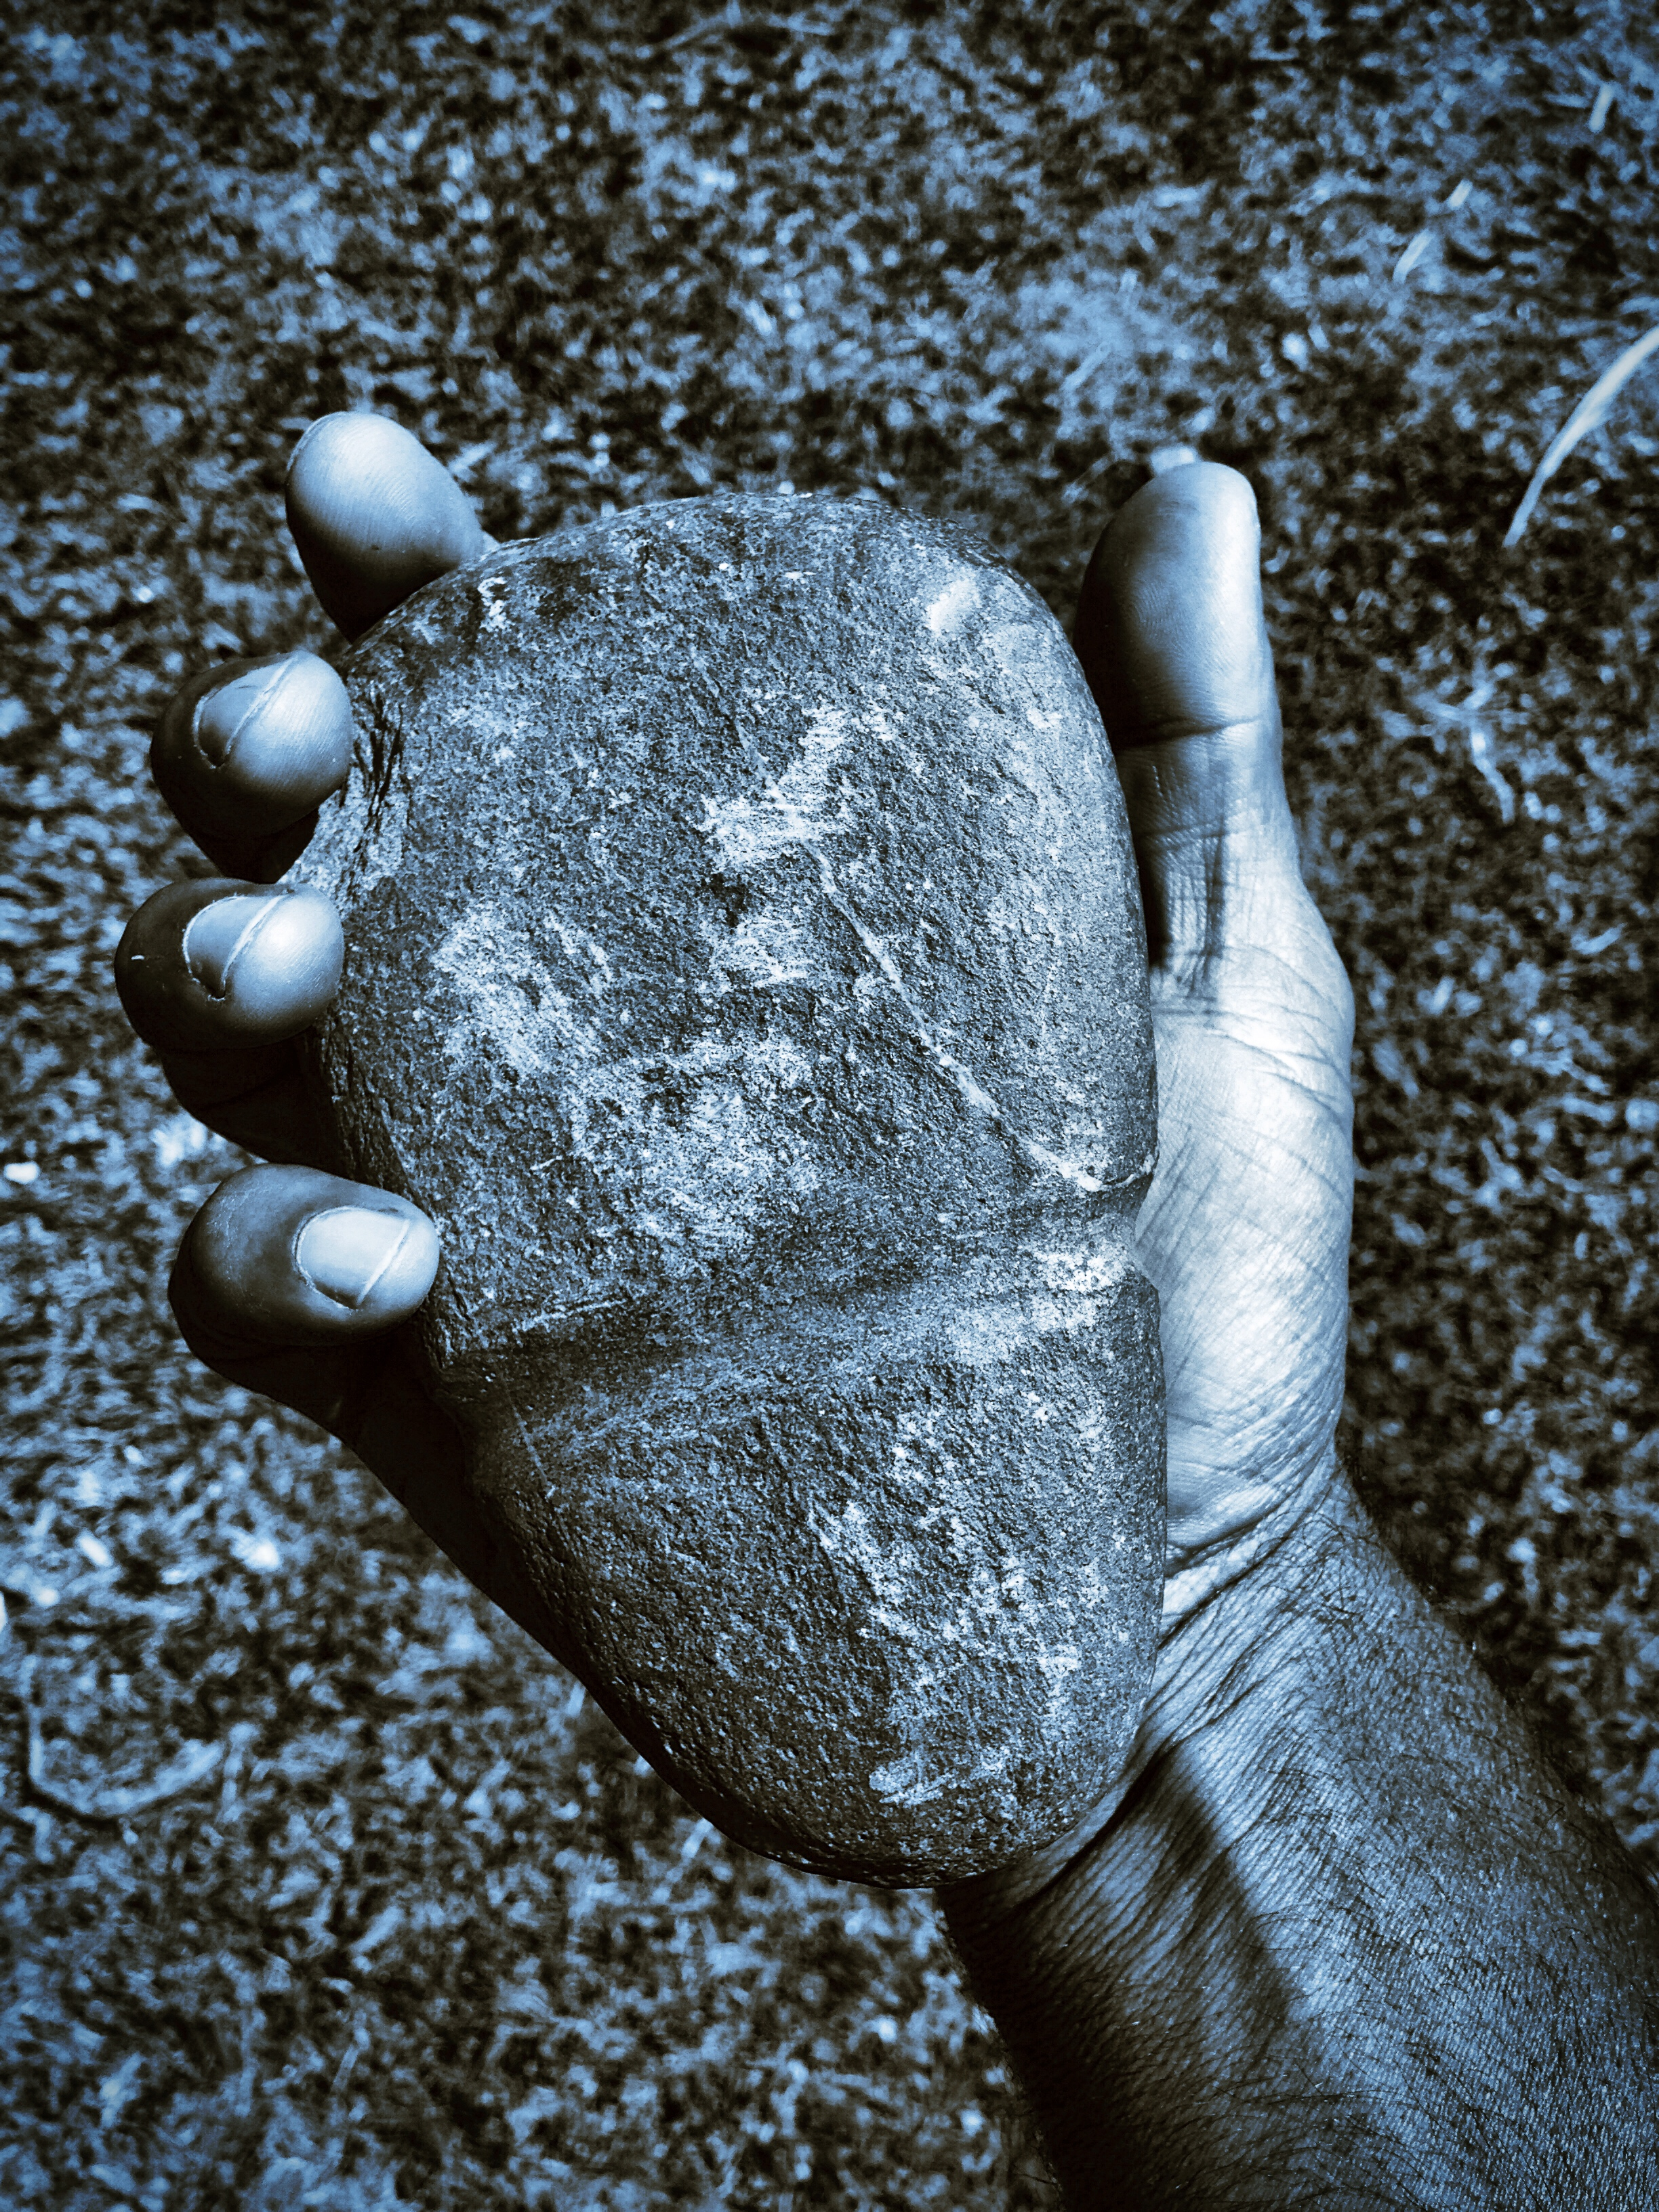 a mans hand holds an indigenous Australian axe head. The axe head is worn wear it was tied to a handle and has chips in the surface around the blade end.